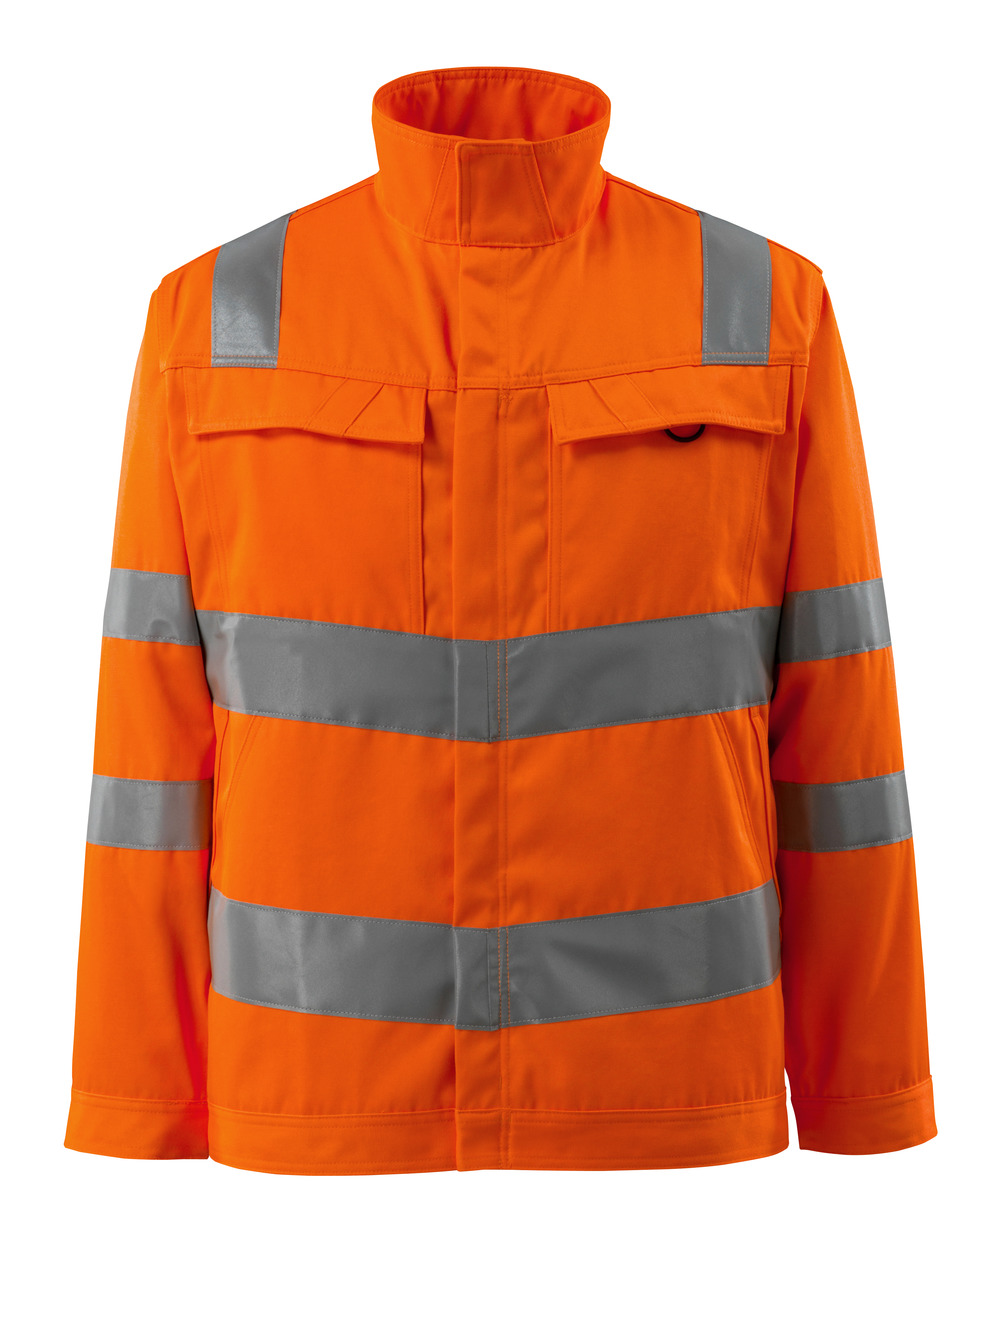 16909-860-14 Jakke - hi-vis orange